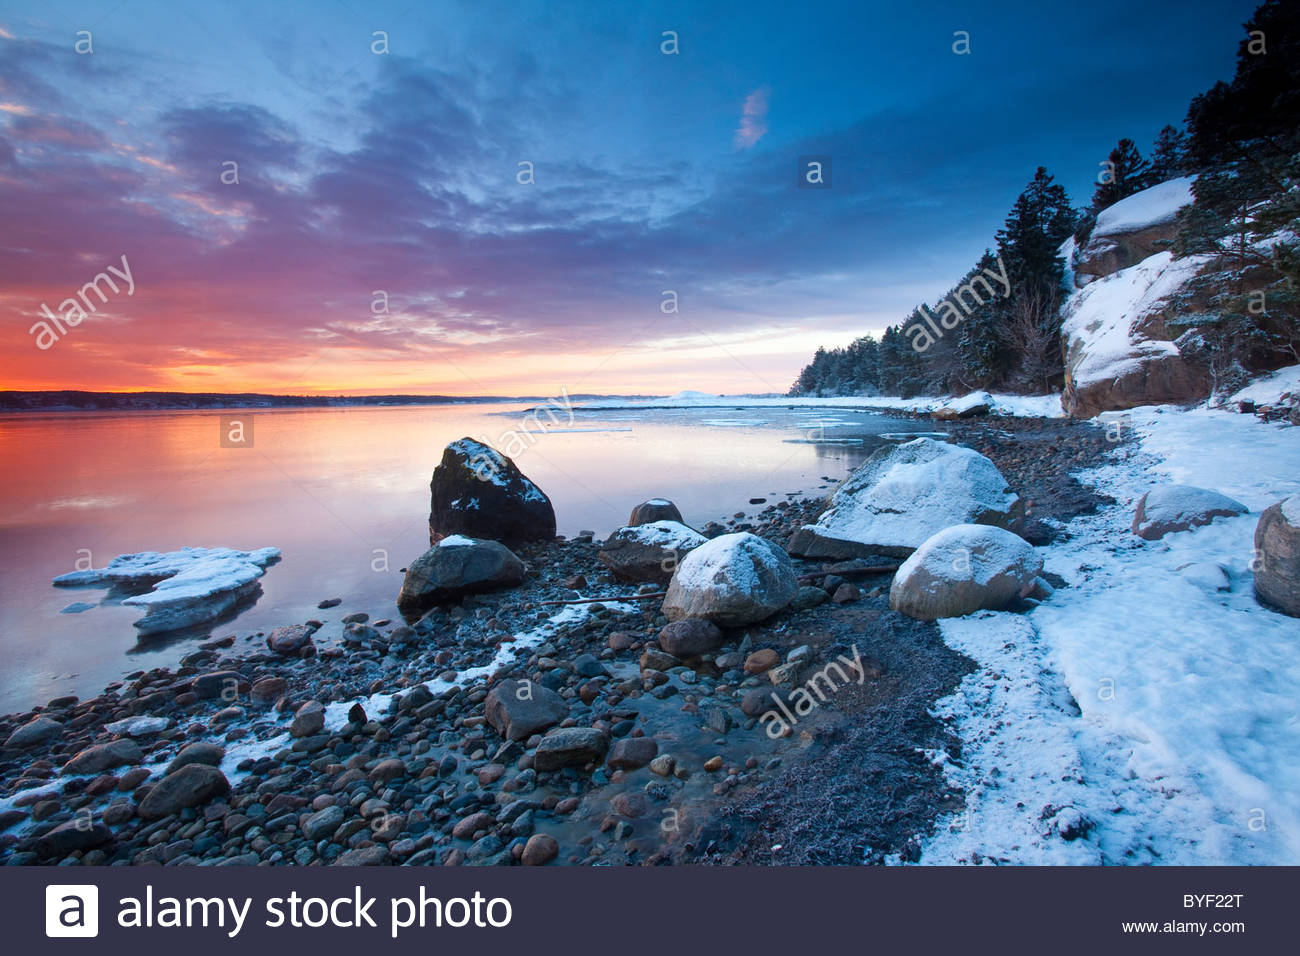 Amazing winter sunrise by the Oslofjord at Oven in Råde, Østfold fylke, southeastern Norway. - Stock Image